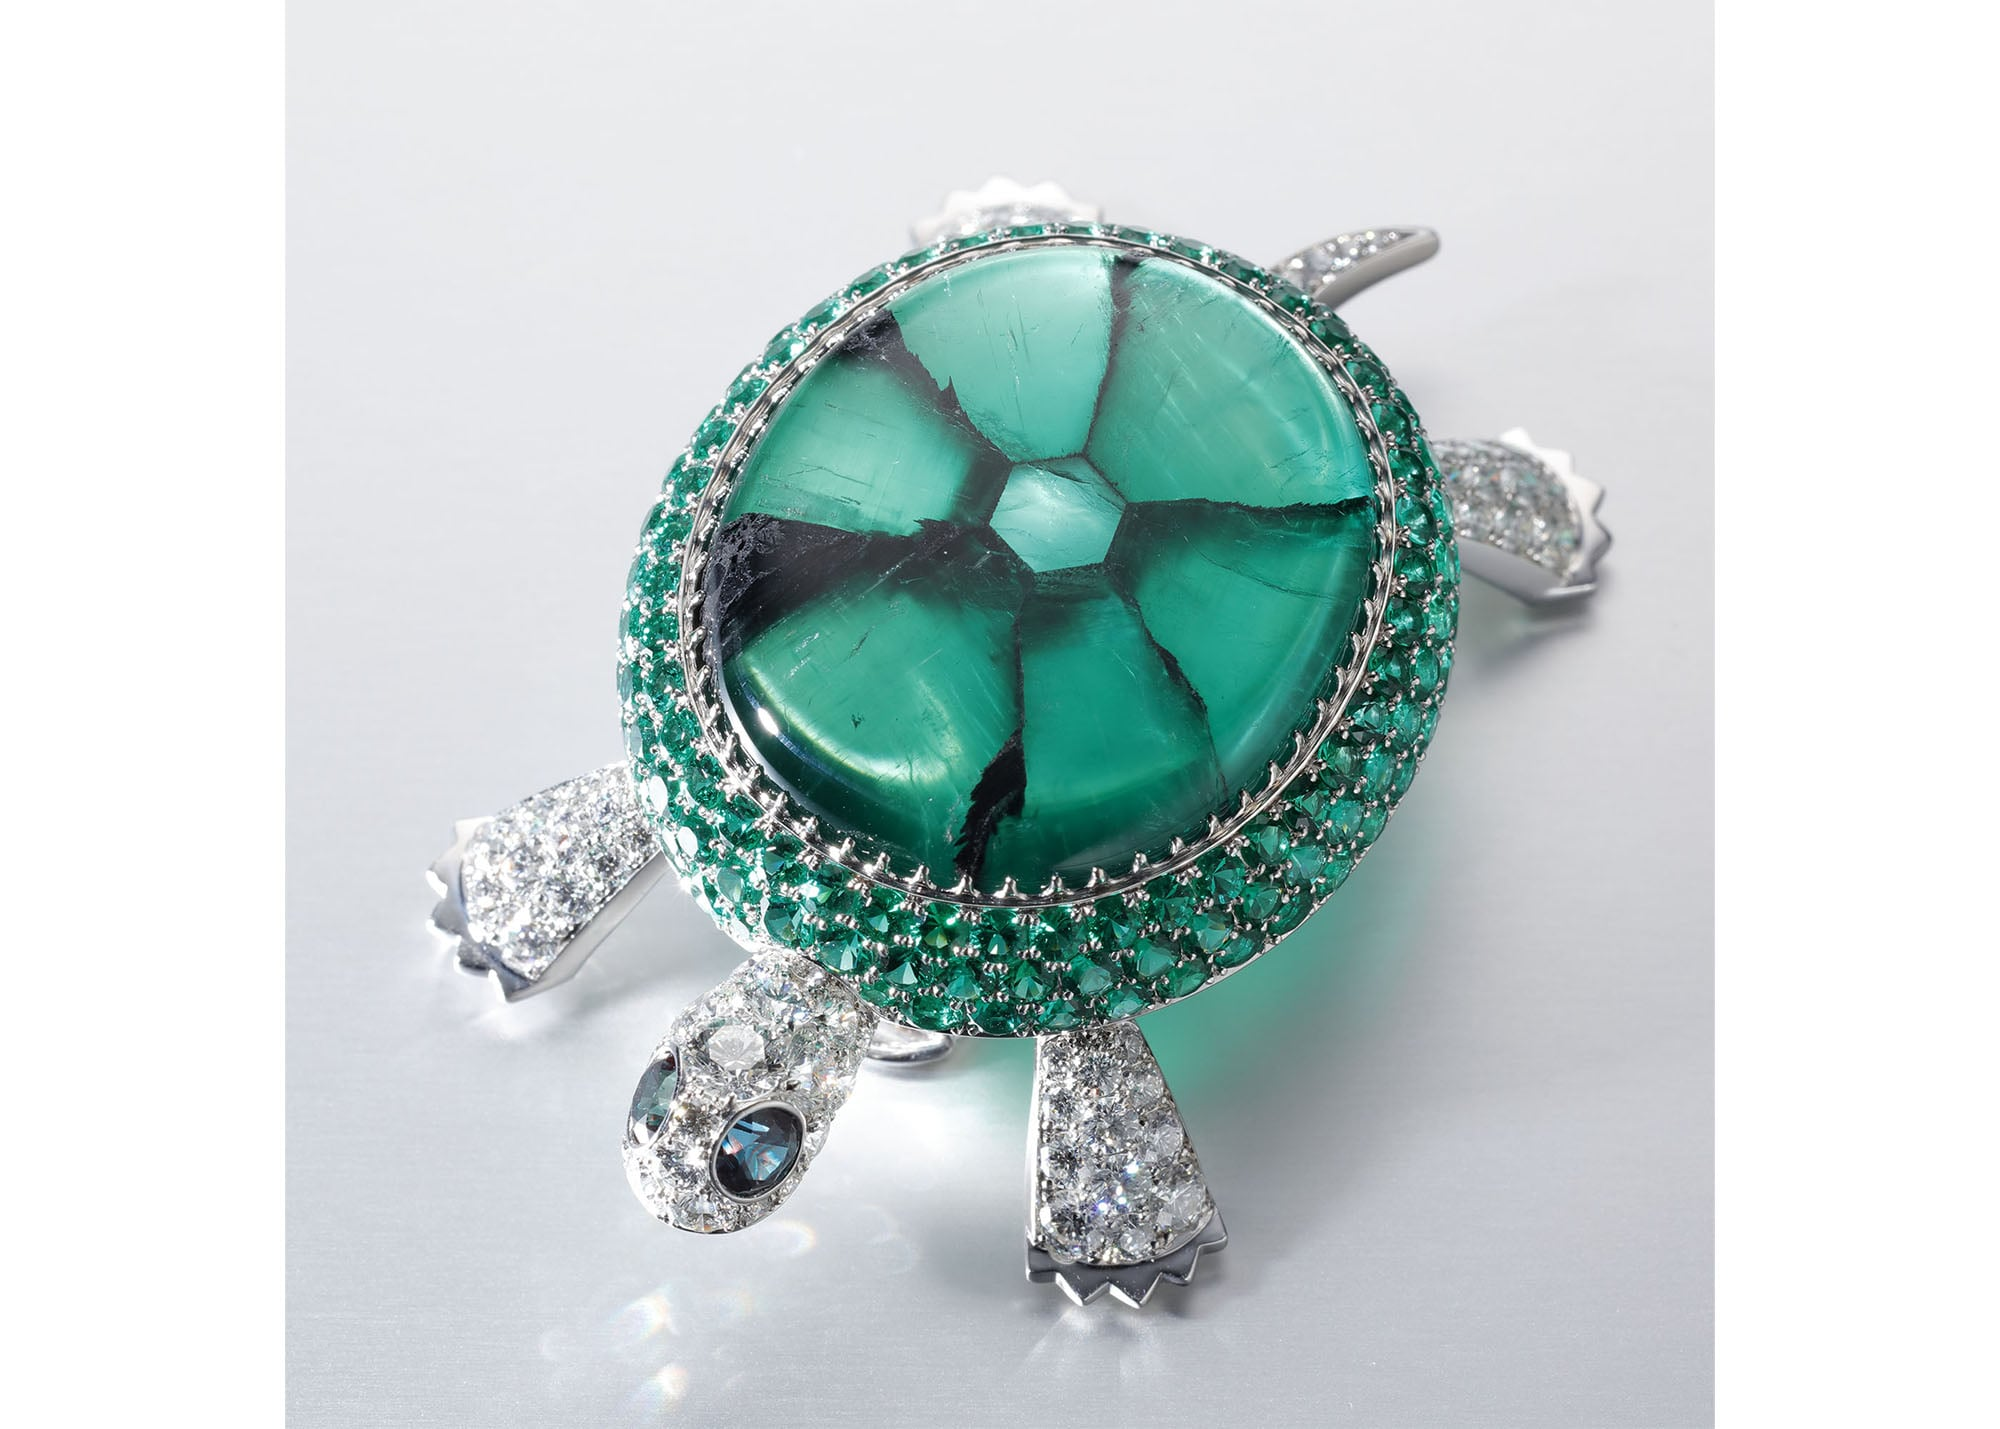 """The """"Turtle"""" brooch is designed using the unique crystal structure of the Trapiche Emerald. It is extremely rare to find a Trapiche Emerald with magnificent pattern, that clearly appears like this brooch. Brooch, Pt950, Trapiche Emerald, Emerald Diamond, Alexandrite (Not for Sale)"""